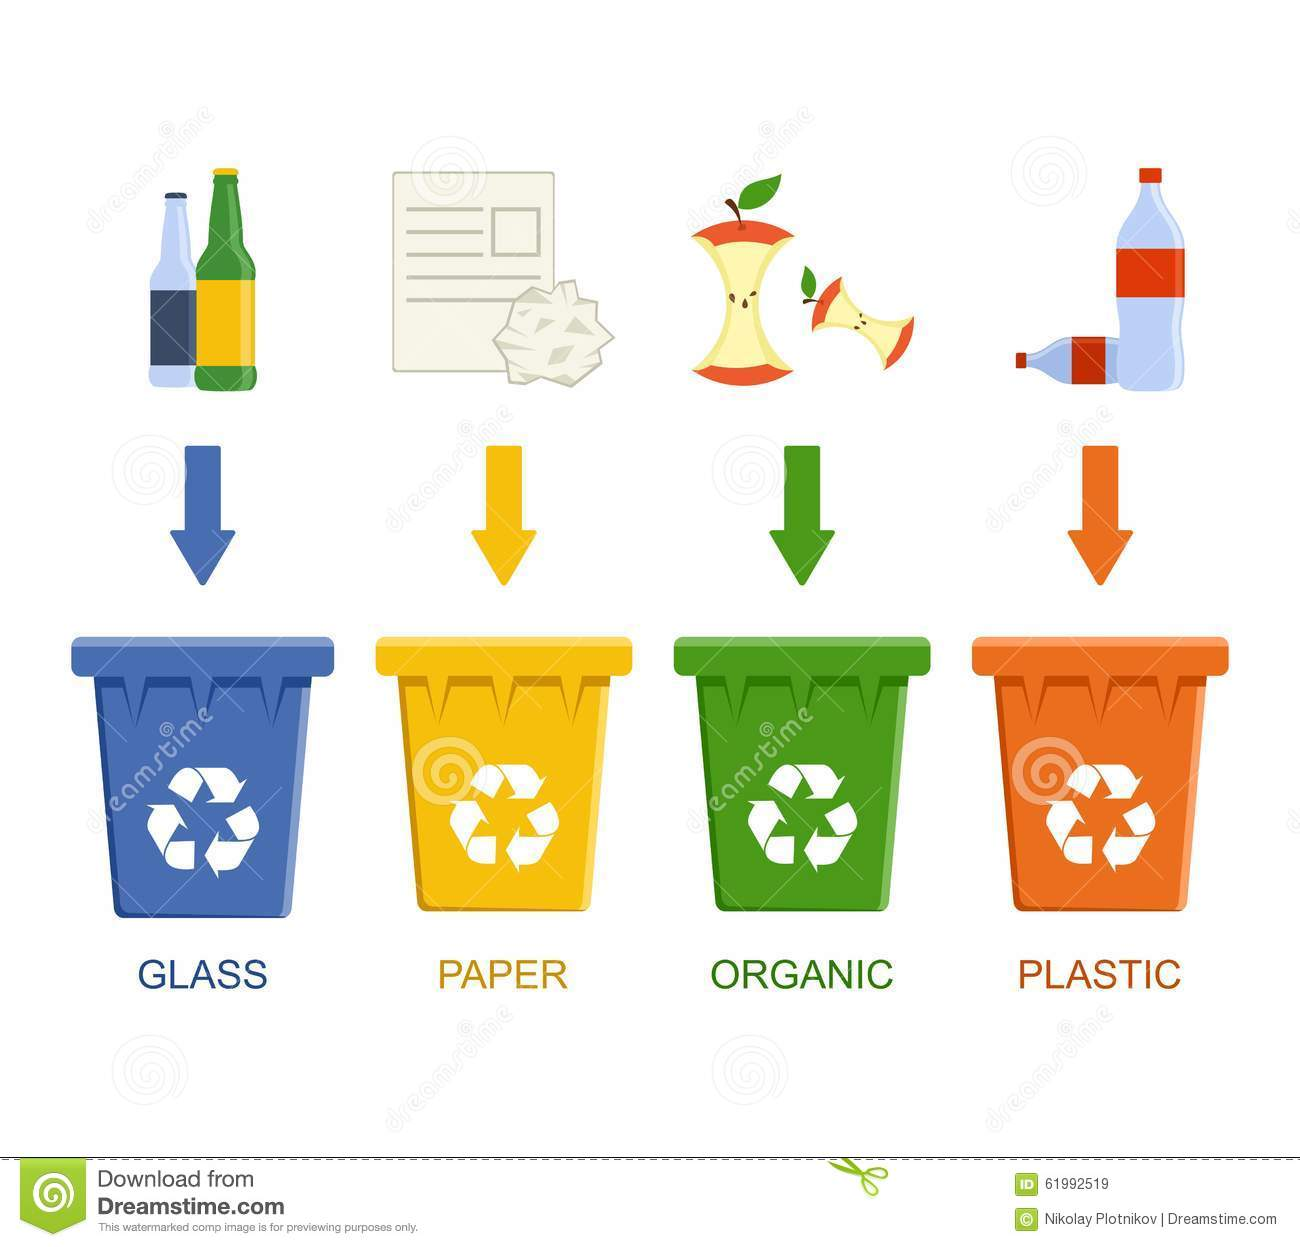 Design A Poster For Recycling